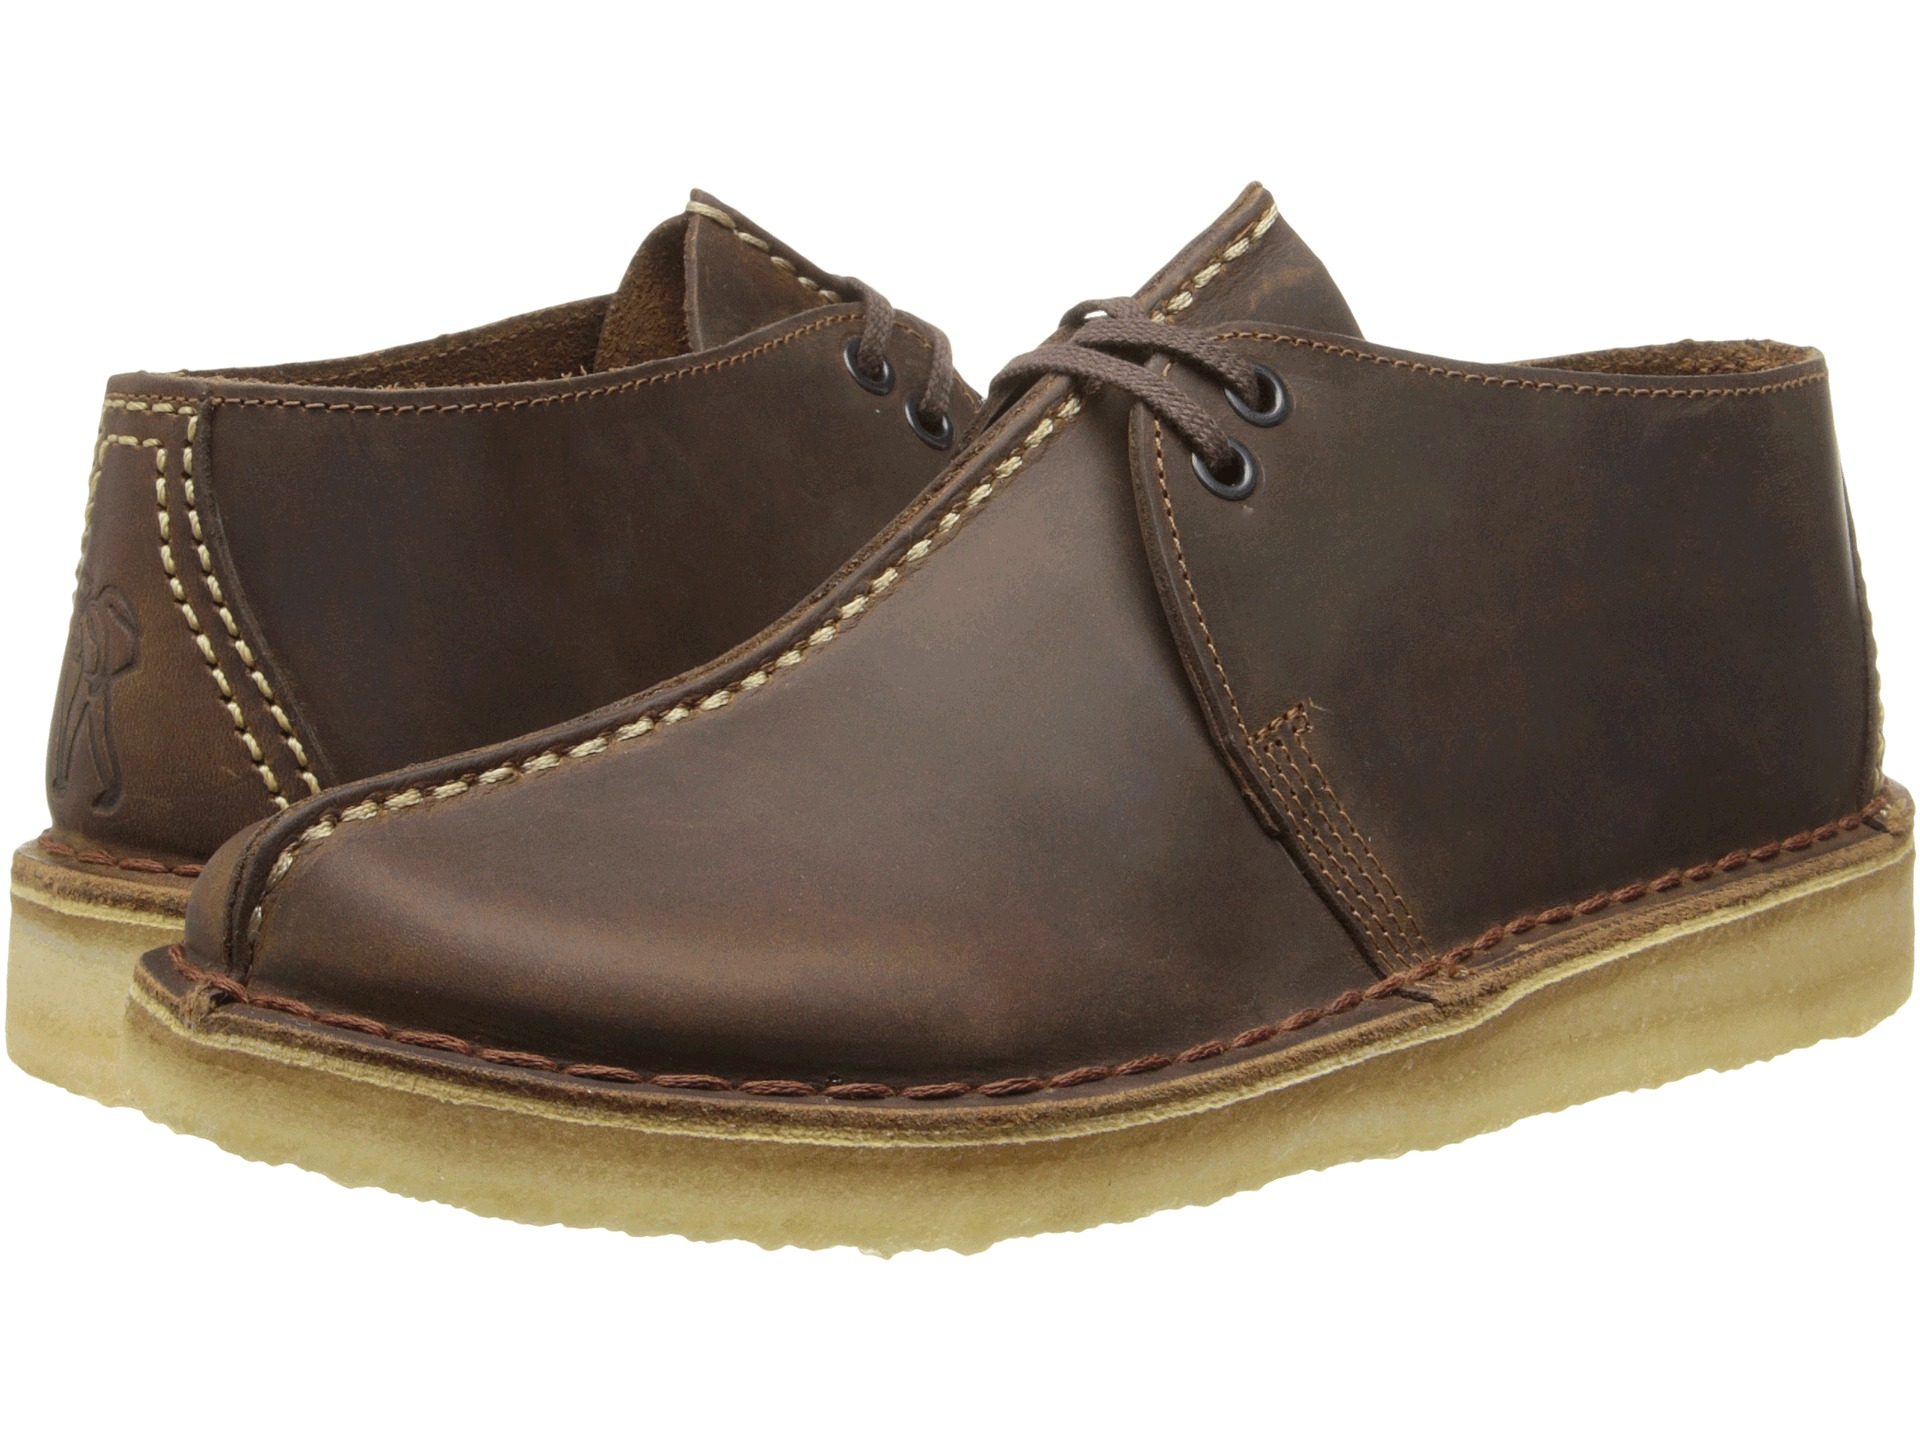 Clarks Narrow Fit Mens Shoes